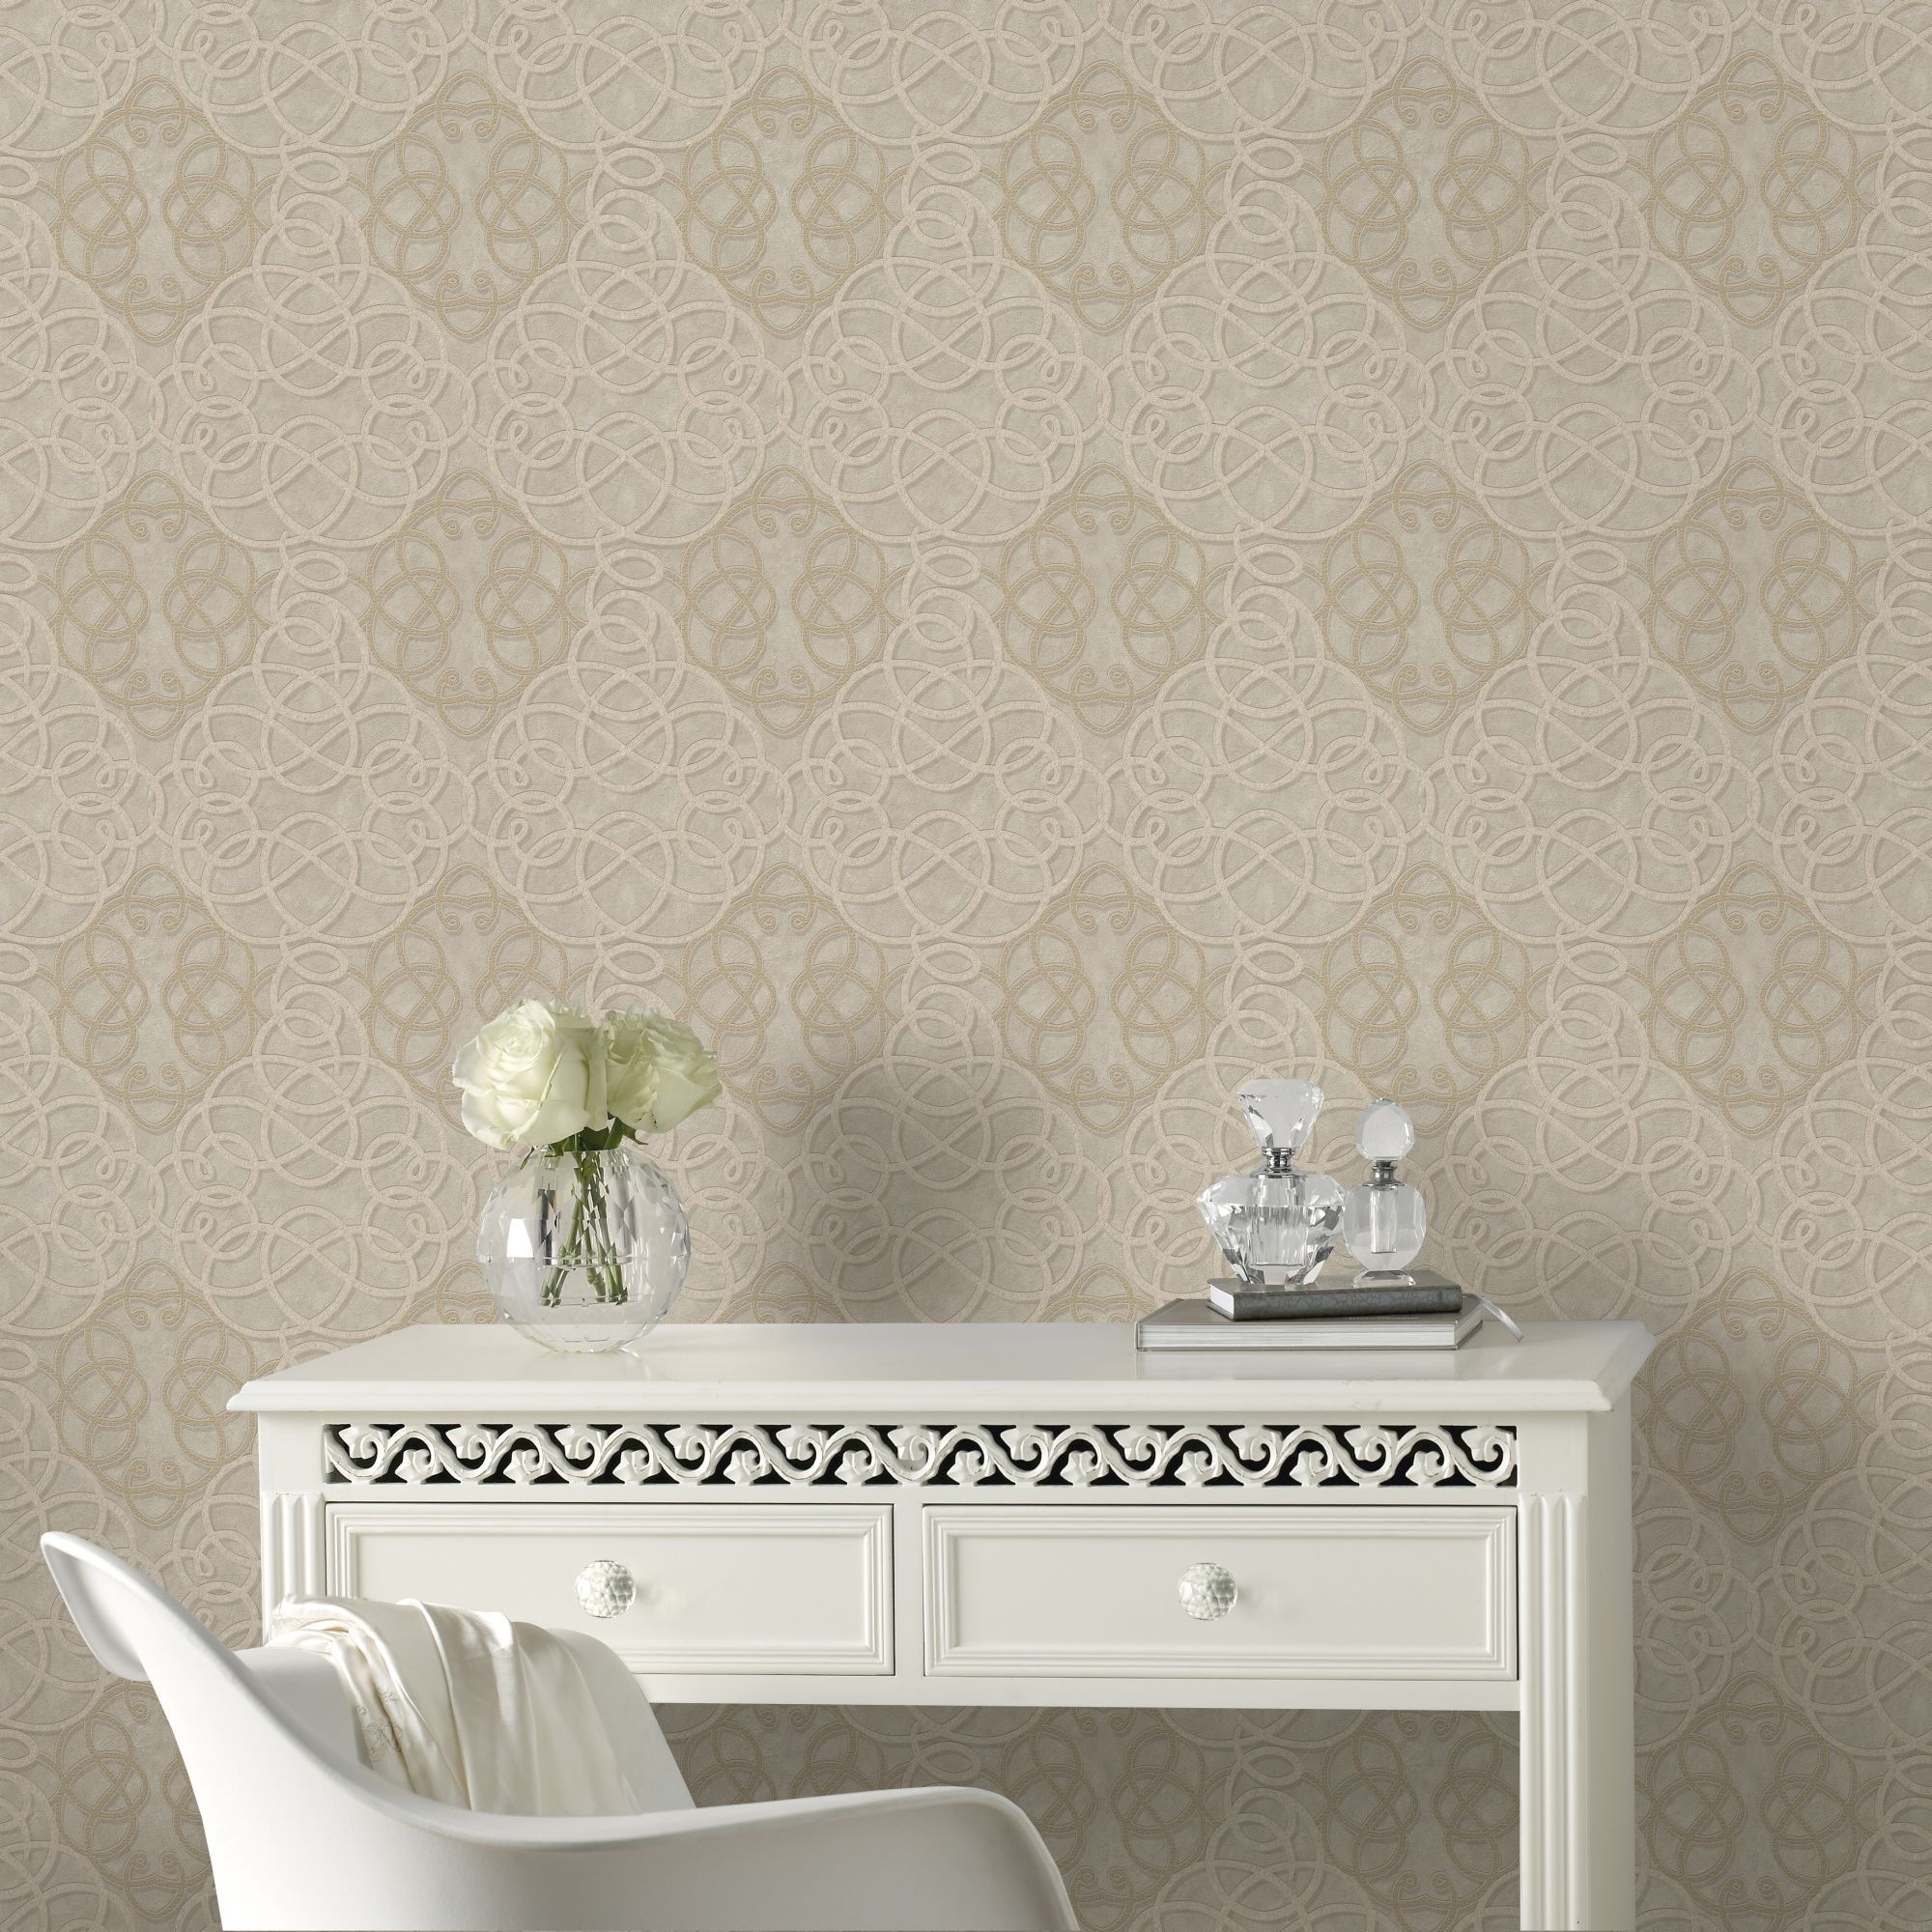 Boutique Ribbon Dance Geometric Gold Metallic Wallpaper